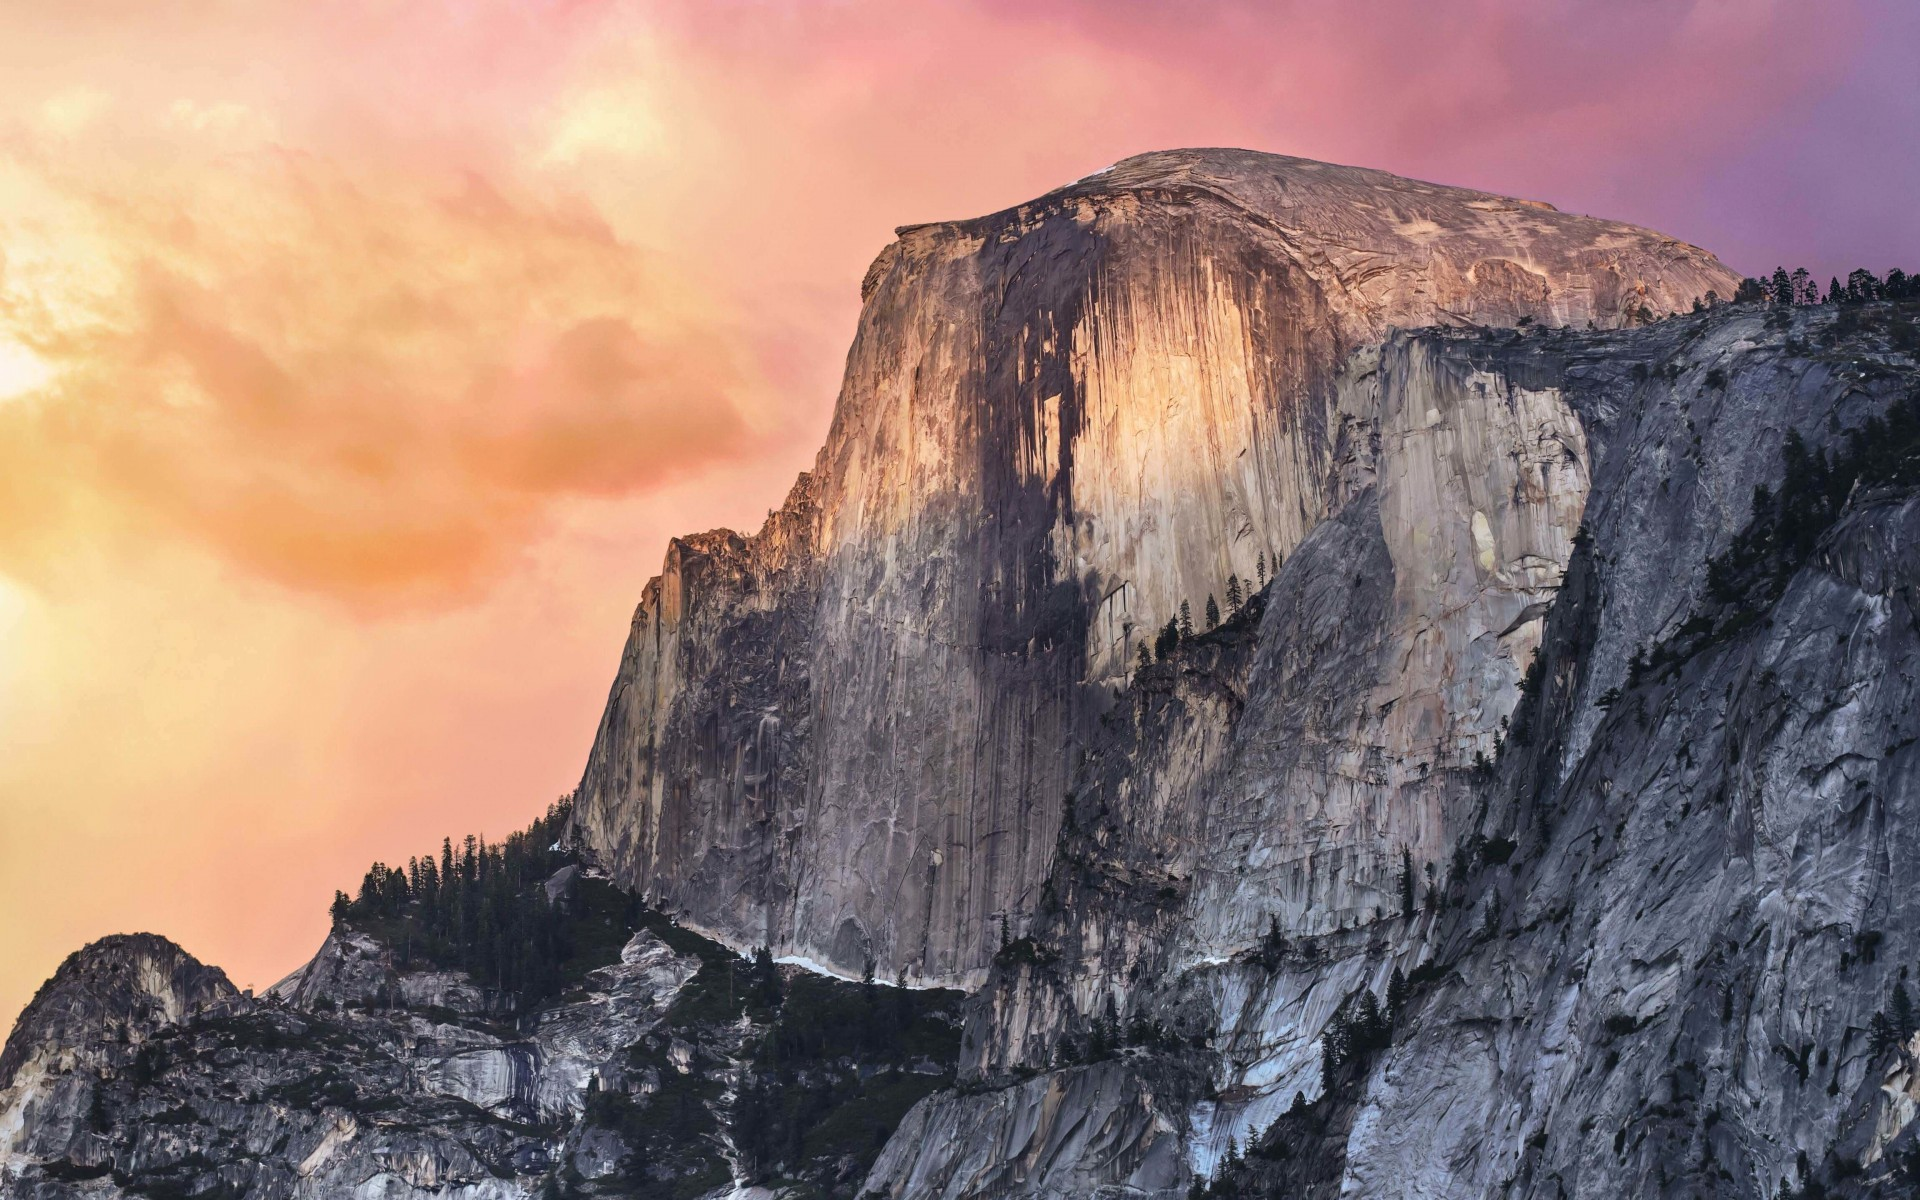 Yosemite Wallpaper for Desktop 1920x1200